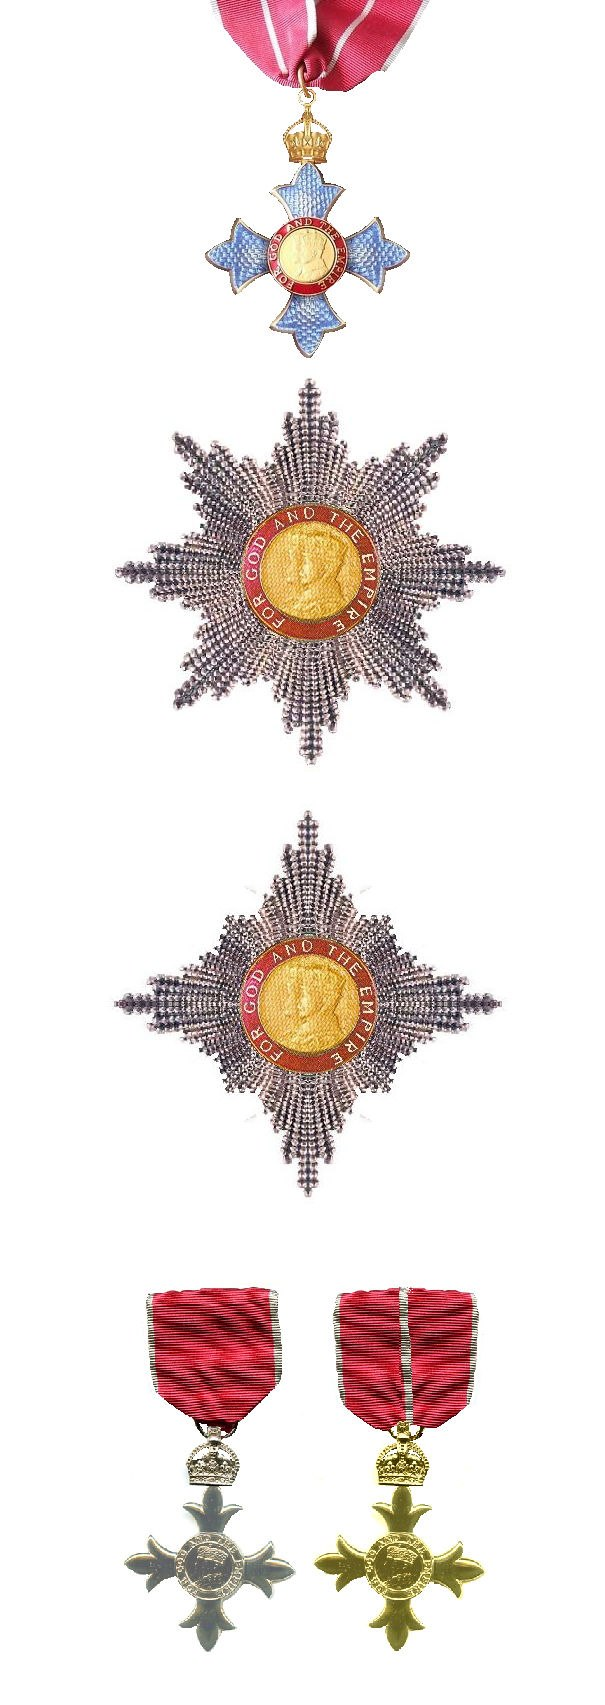 Order of the British Empire Insignia